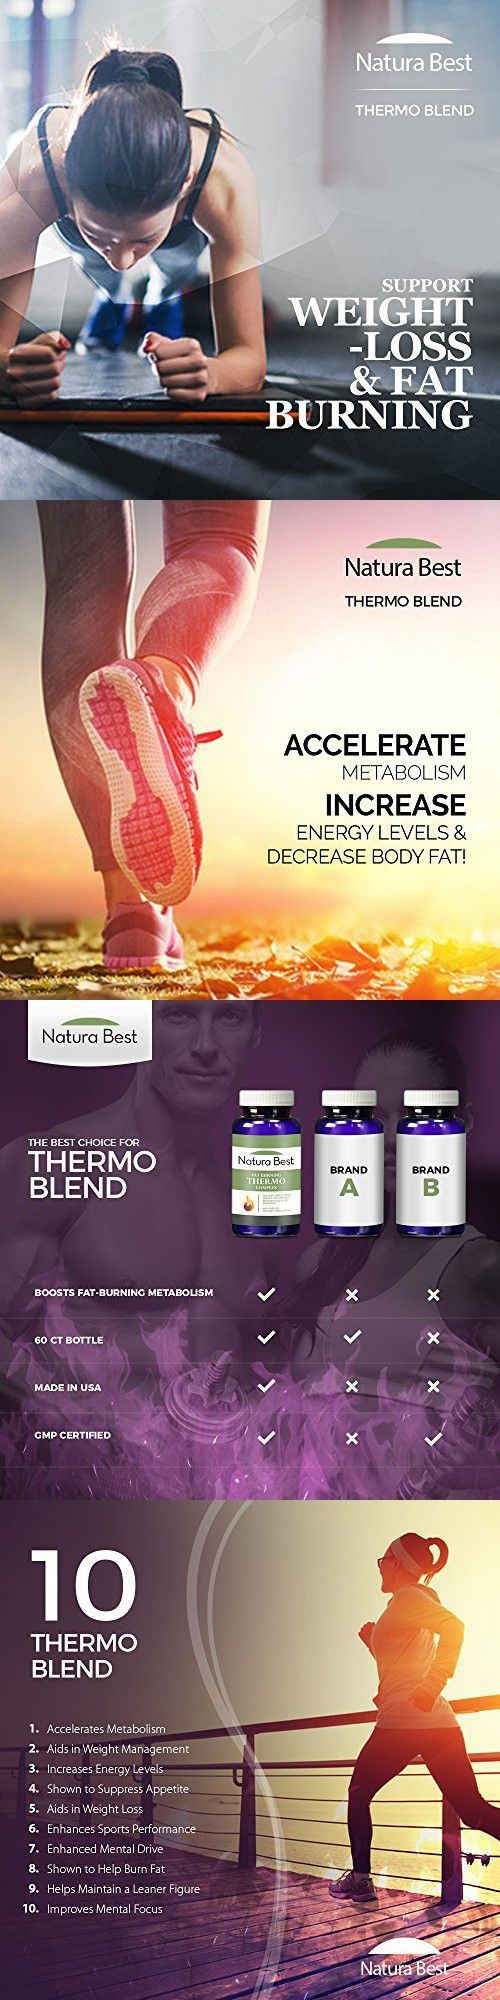 Naturabest Thermogenic Fat Burner and Weight Loss Supplement - Ultimate Belly Fat Burner for Men and Women, Increases Metabolism, Energy Booster #bellyfatburnerformen